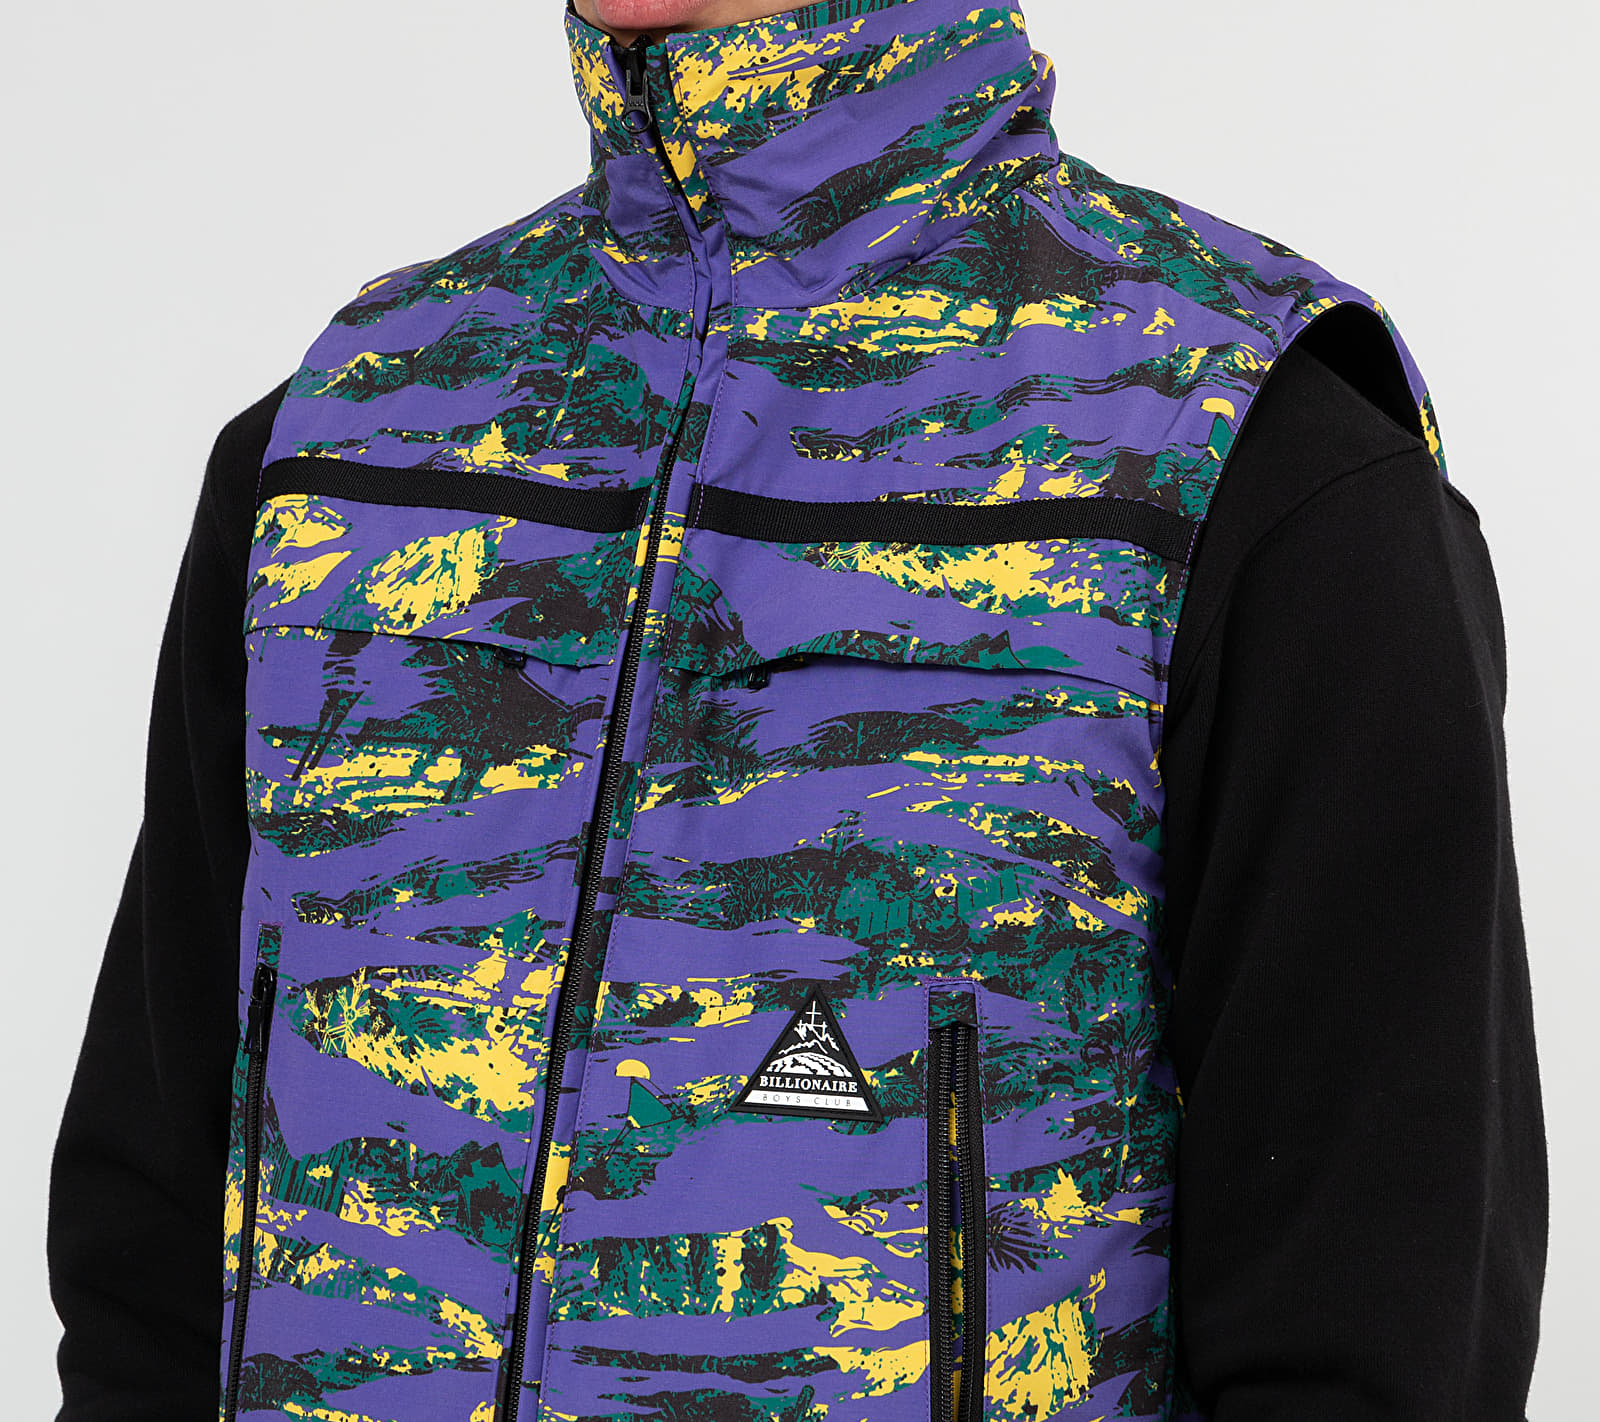 Billionaire Boys Club Reversible Ski Vest Purple Camo/ Black, Multicolour